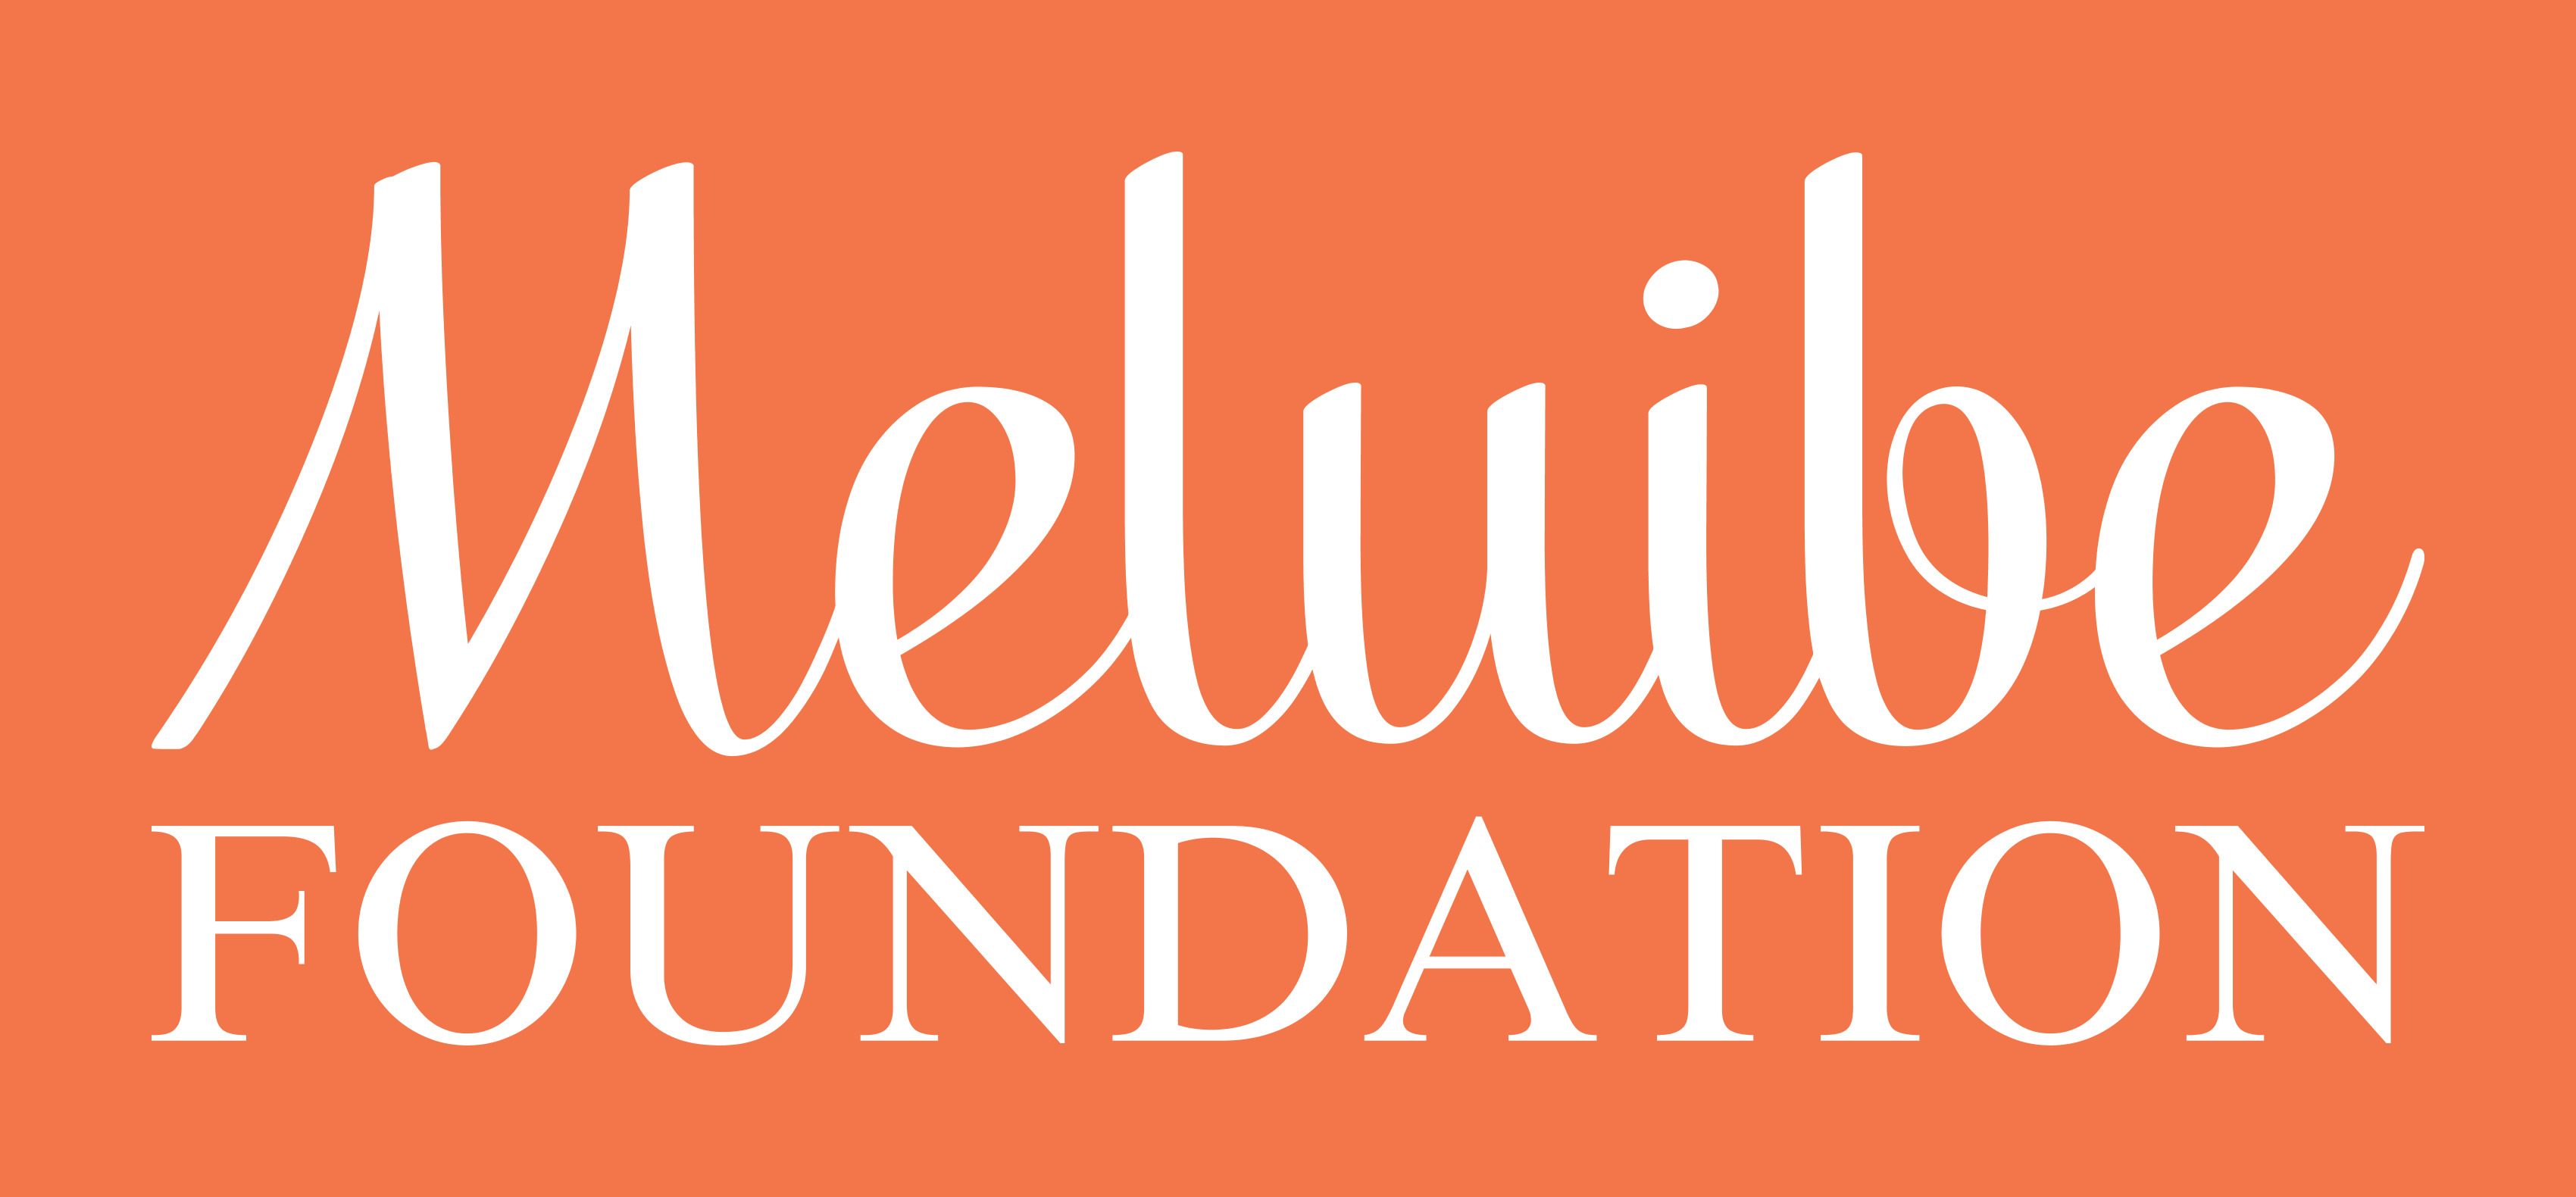 Meluibe Foundation